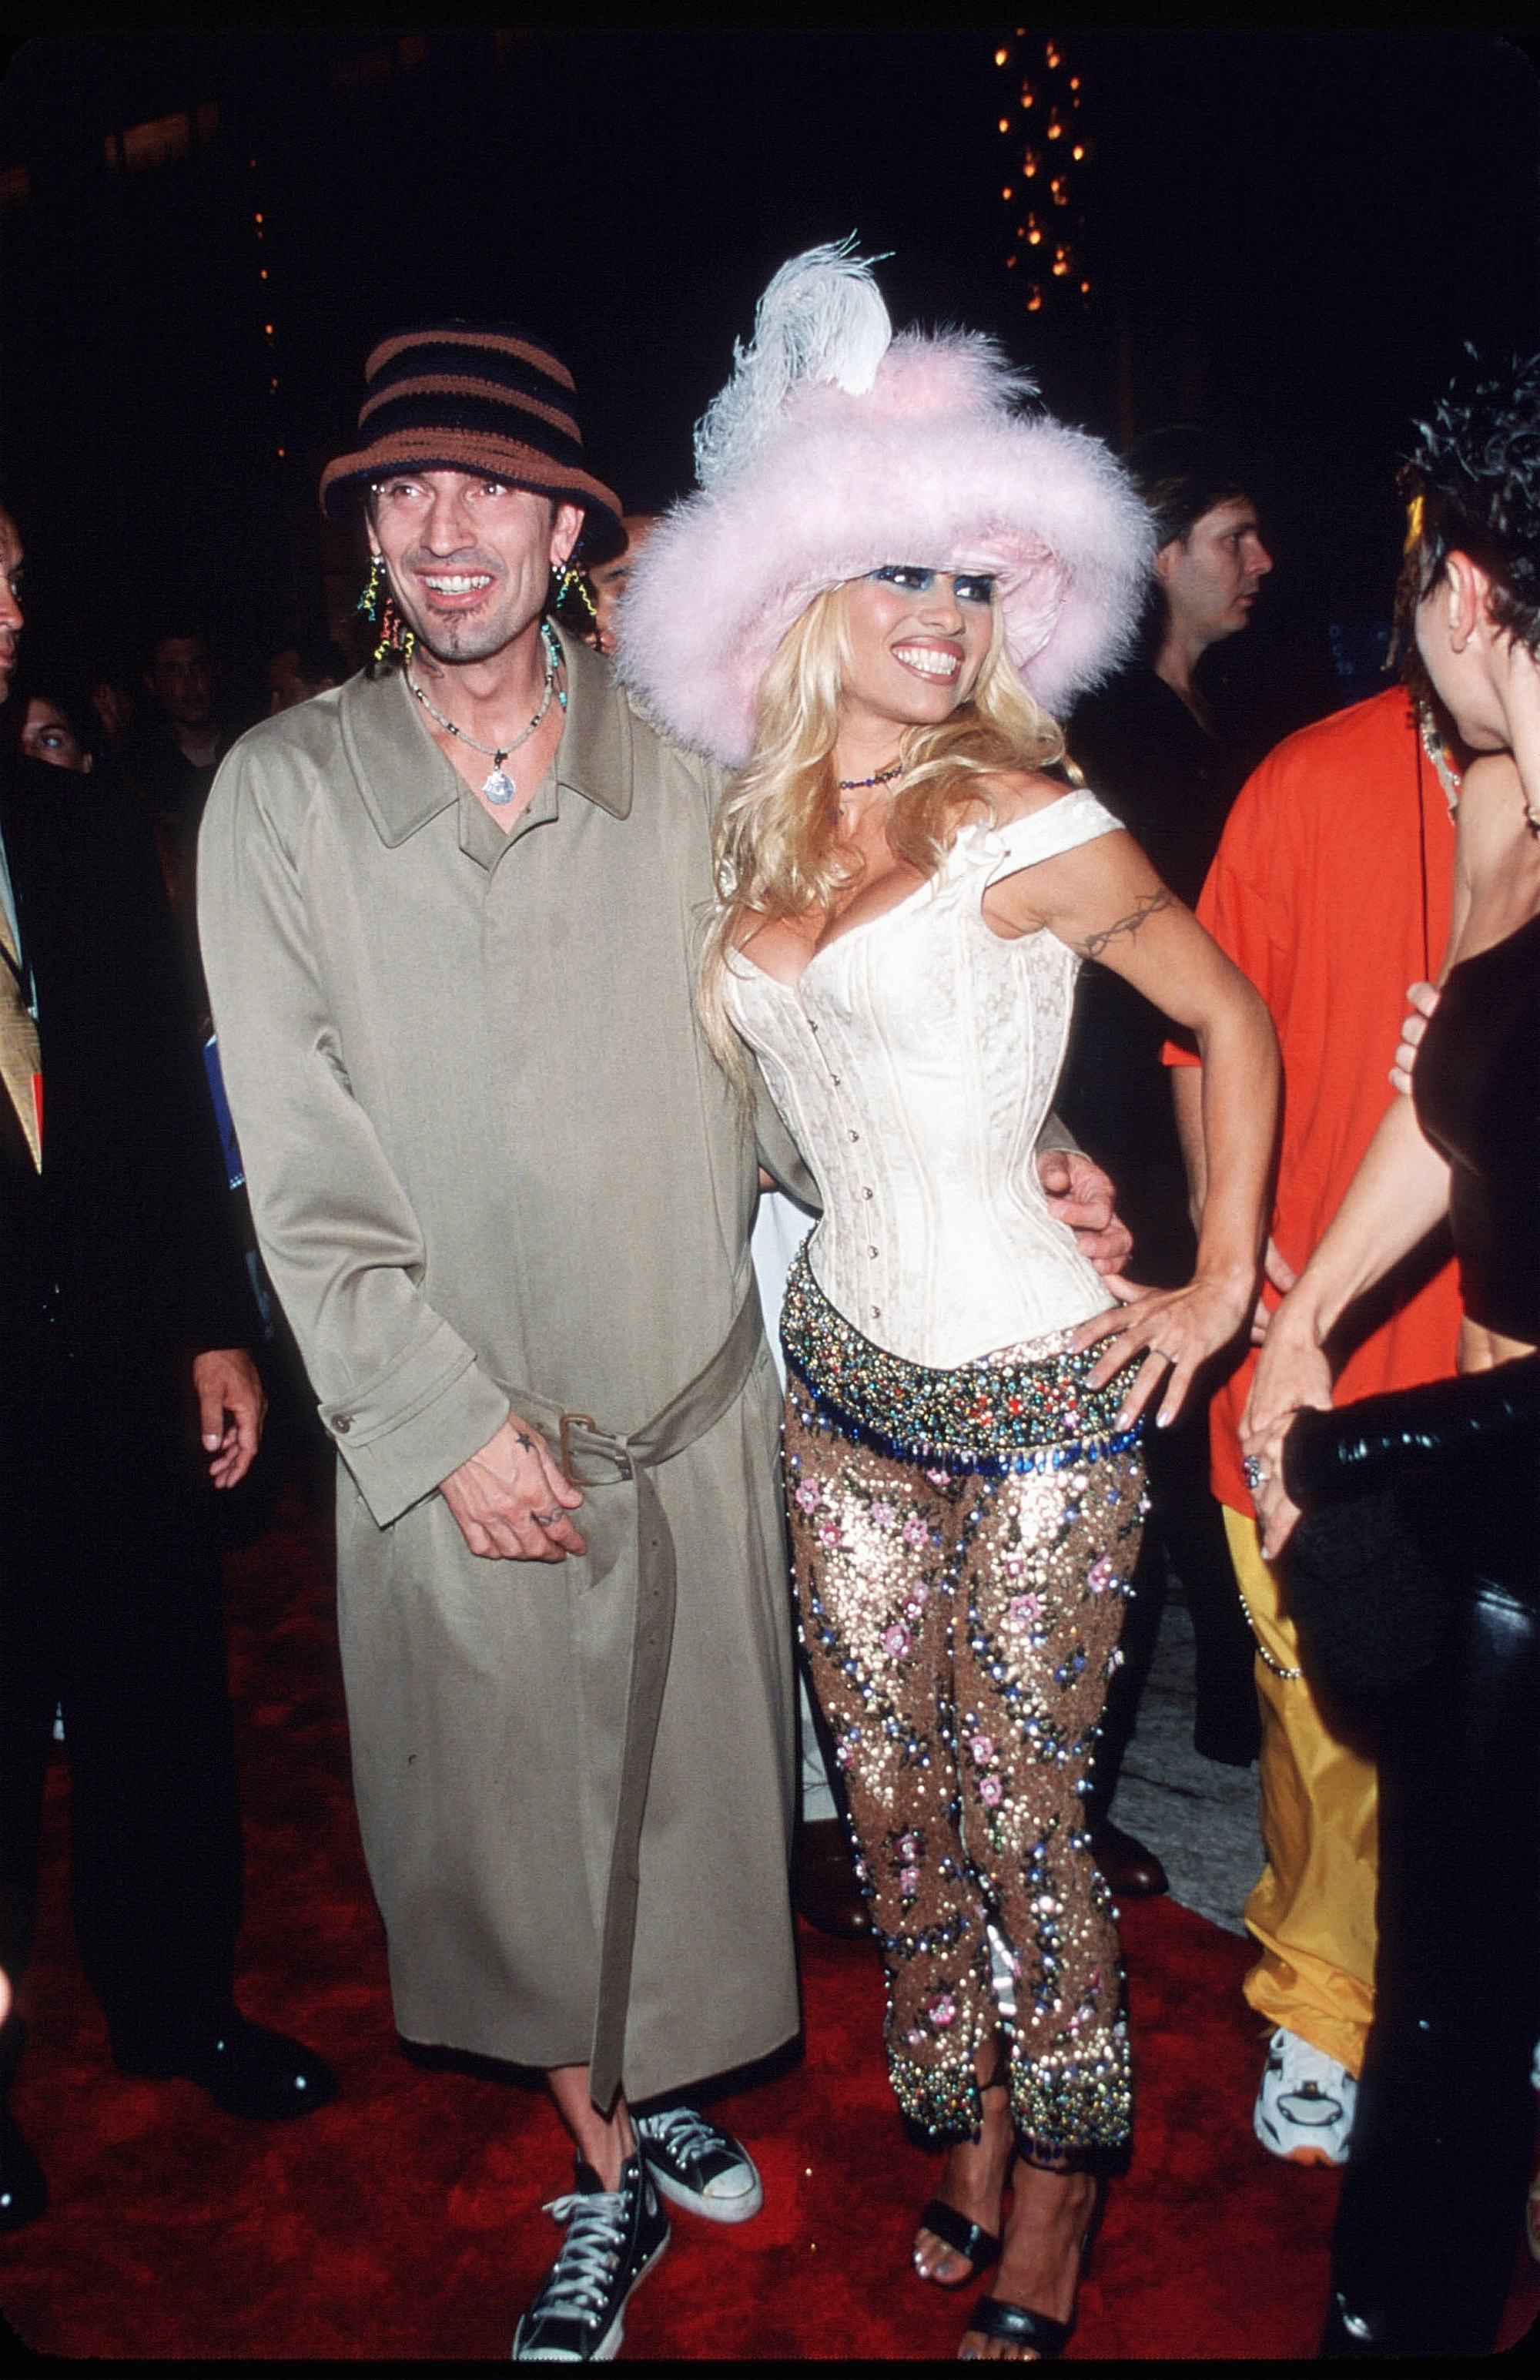 NEW YORK - SEPT 1999: Pamela Anderson poses for a picture with husband Tommy Lee on September 9, 1999 at the MTV Video Music Awards in New York City. Anderson got her start as a Playboy Playmate before moving on to Labatt's commercials, a part in Home Improvement, before starring in Baywatch. (Photo by Evan Agostini/Liaison)